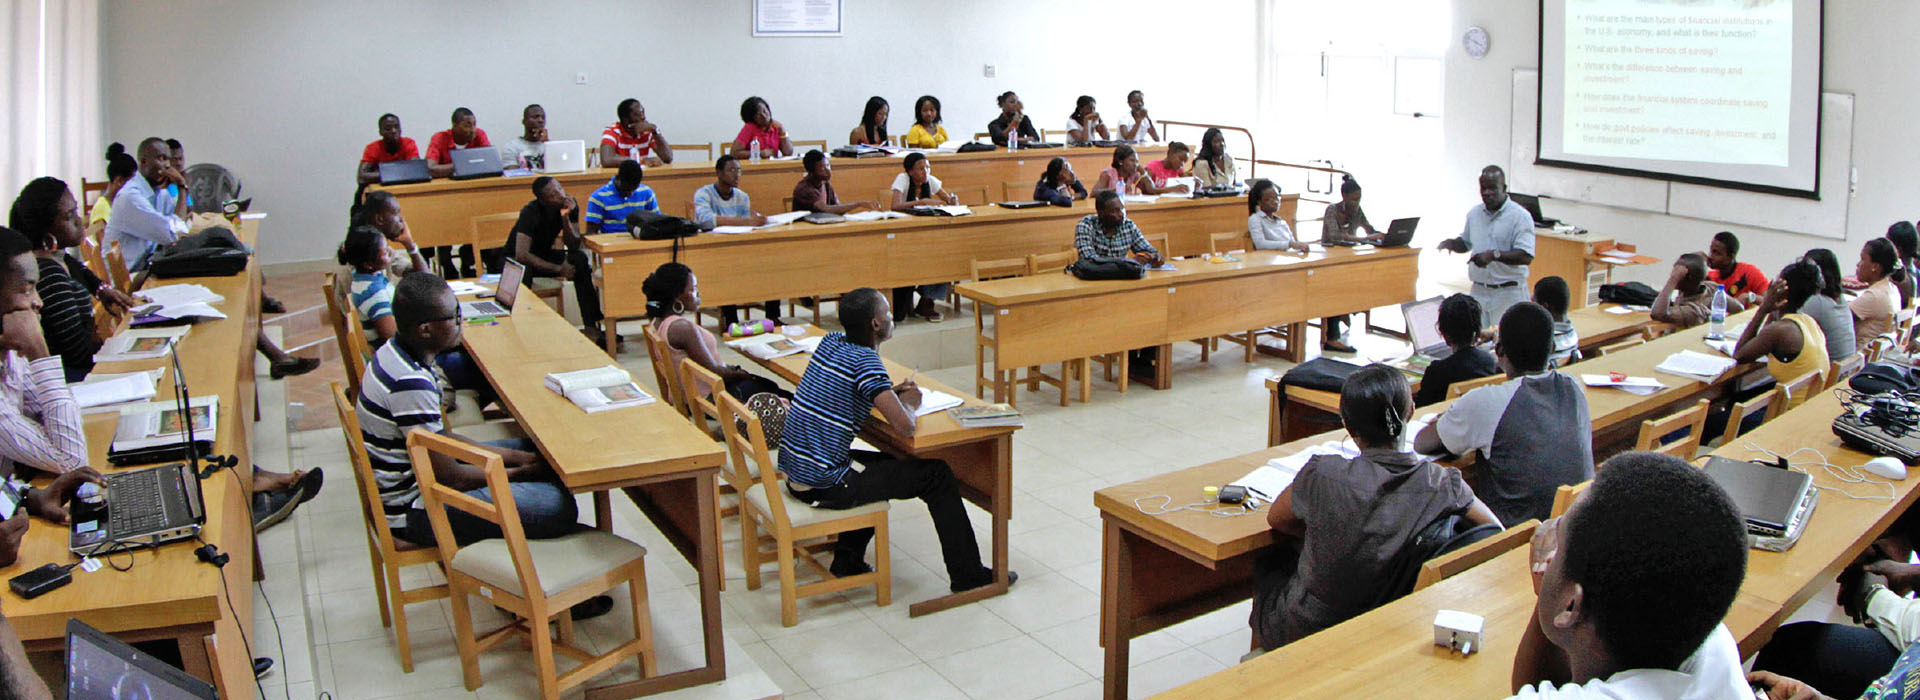 <p>Training a new generation of ethical, entrepreneurial leaders in Africa</p>